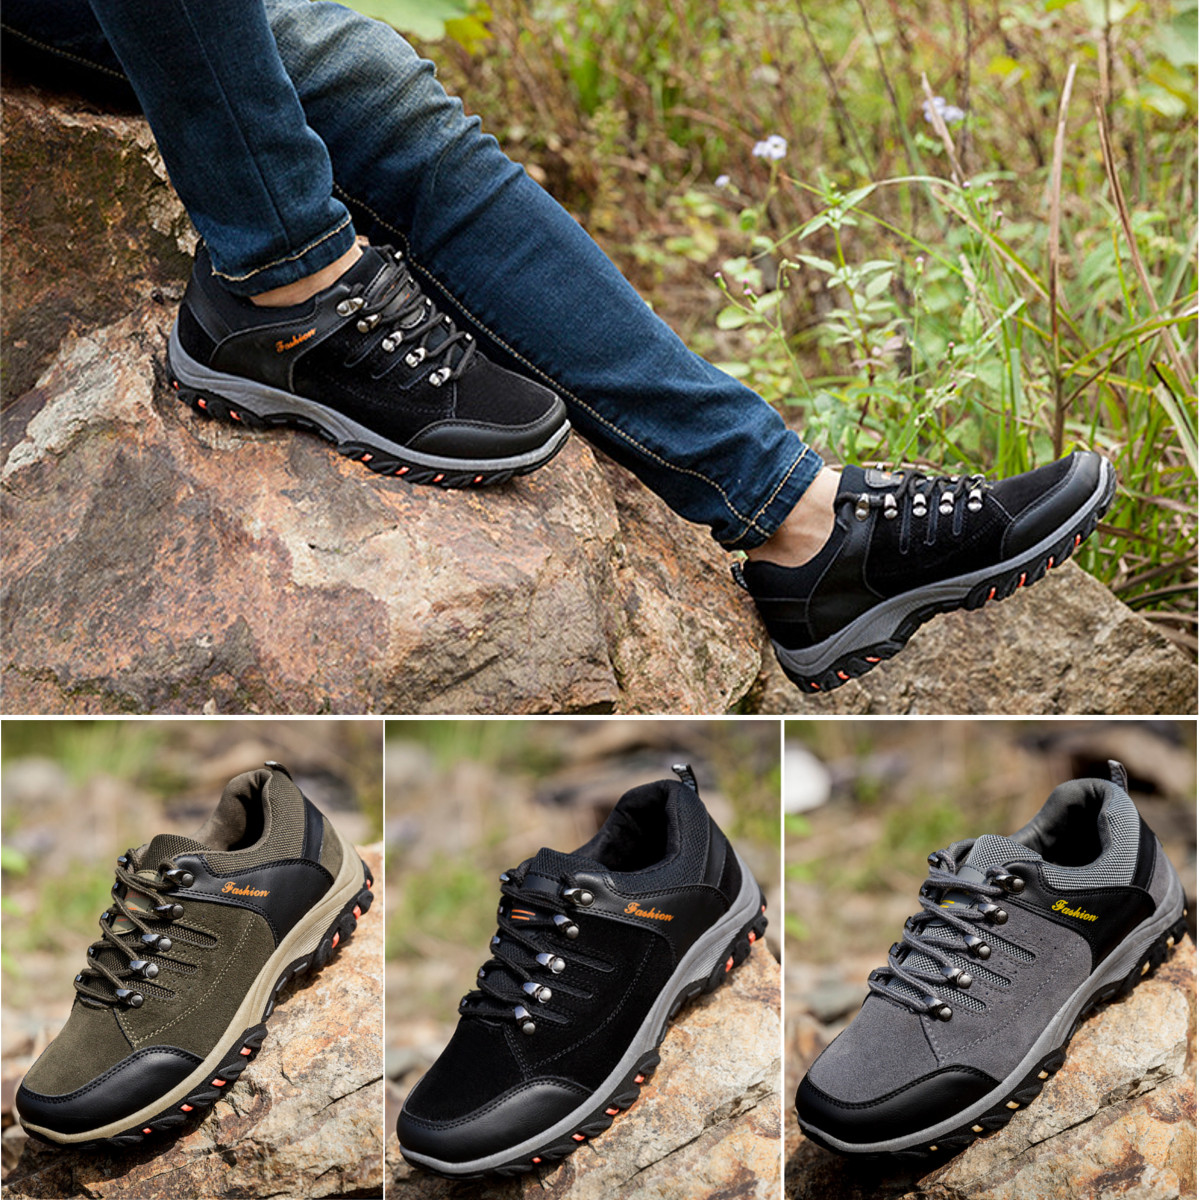 Mens Safety Shoes Fashion Summer Breathable Outdoor Work Boots Hiking Climbing